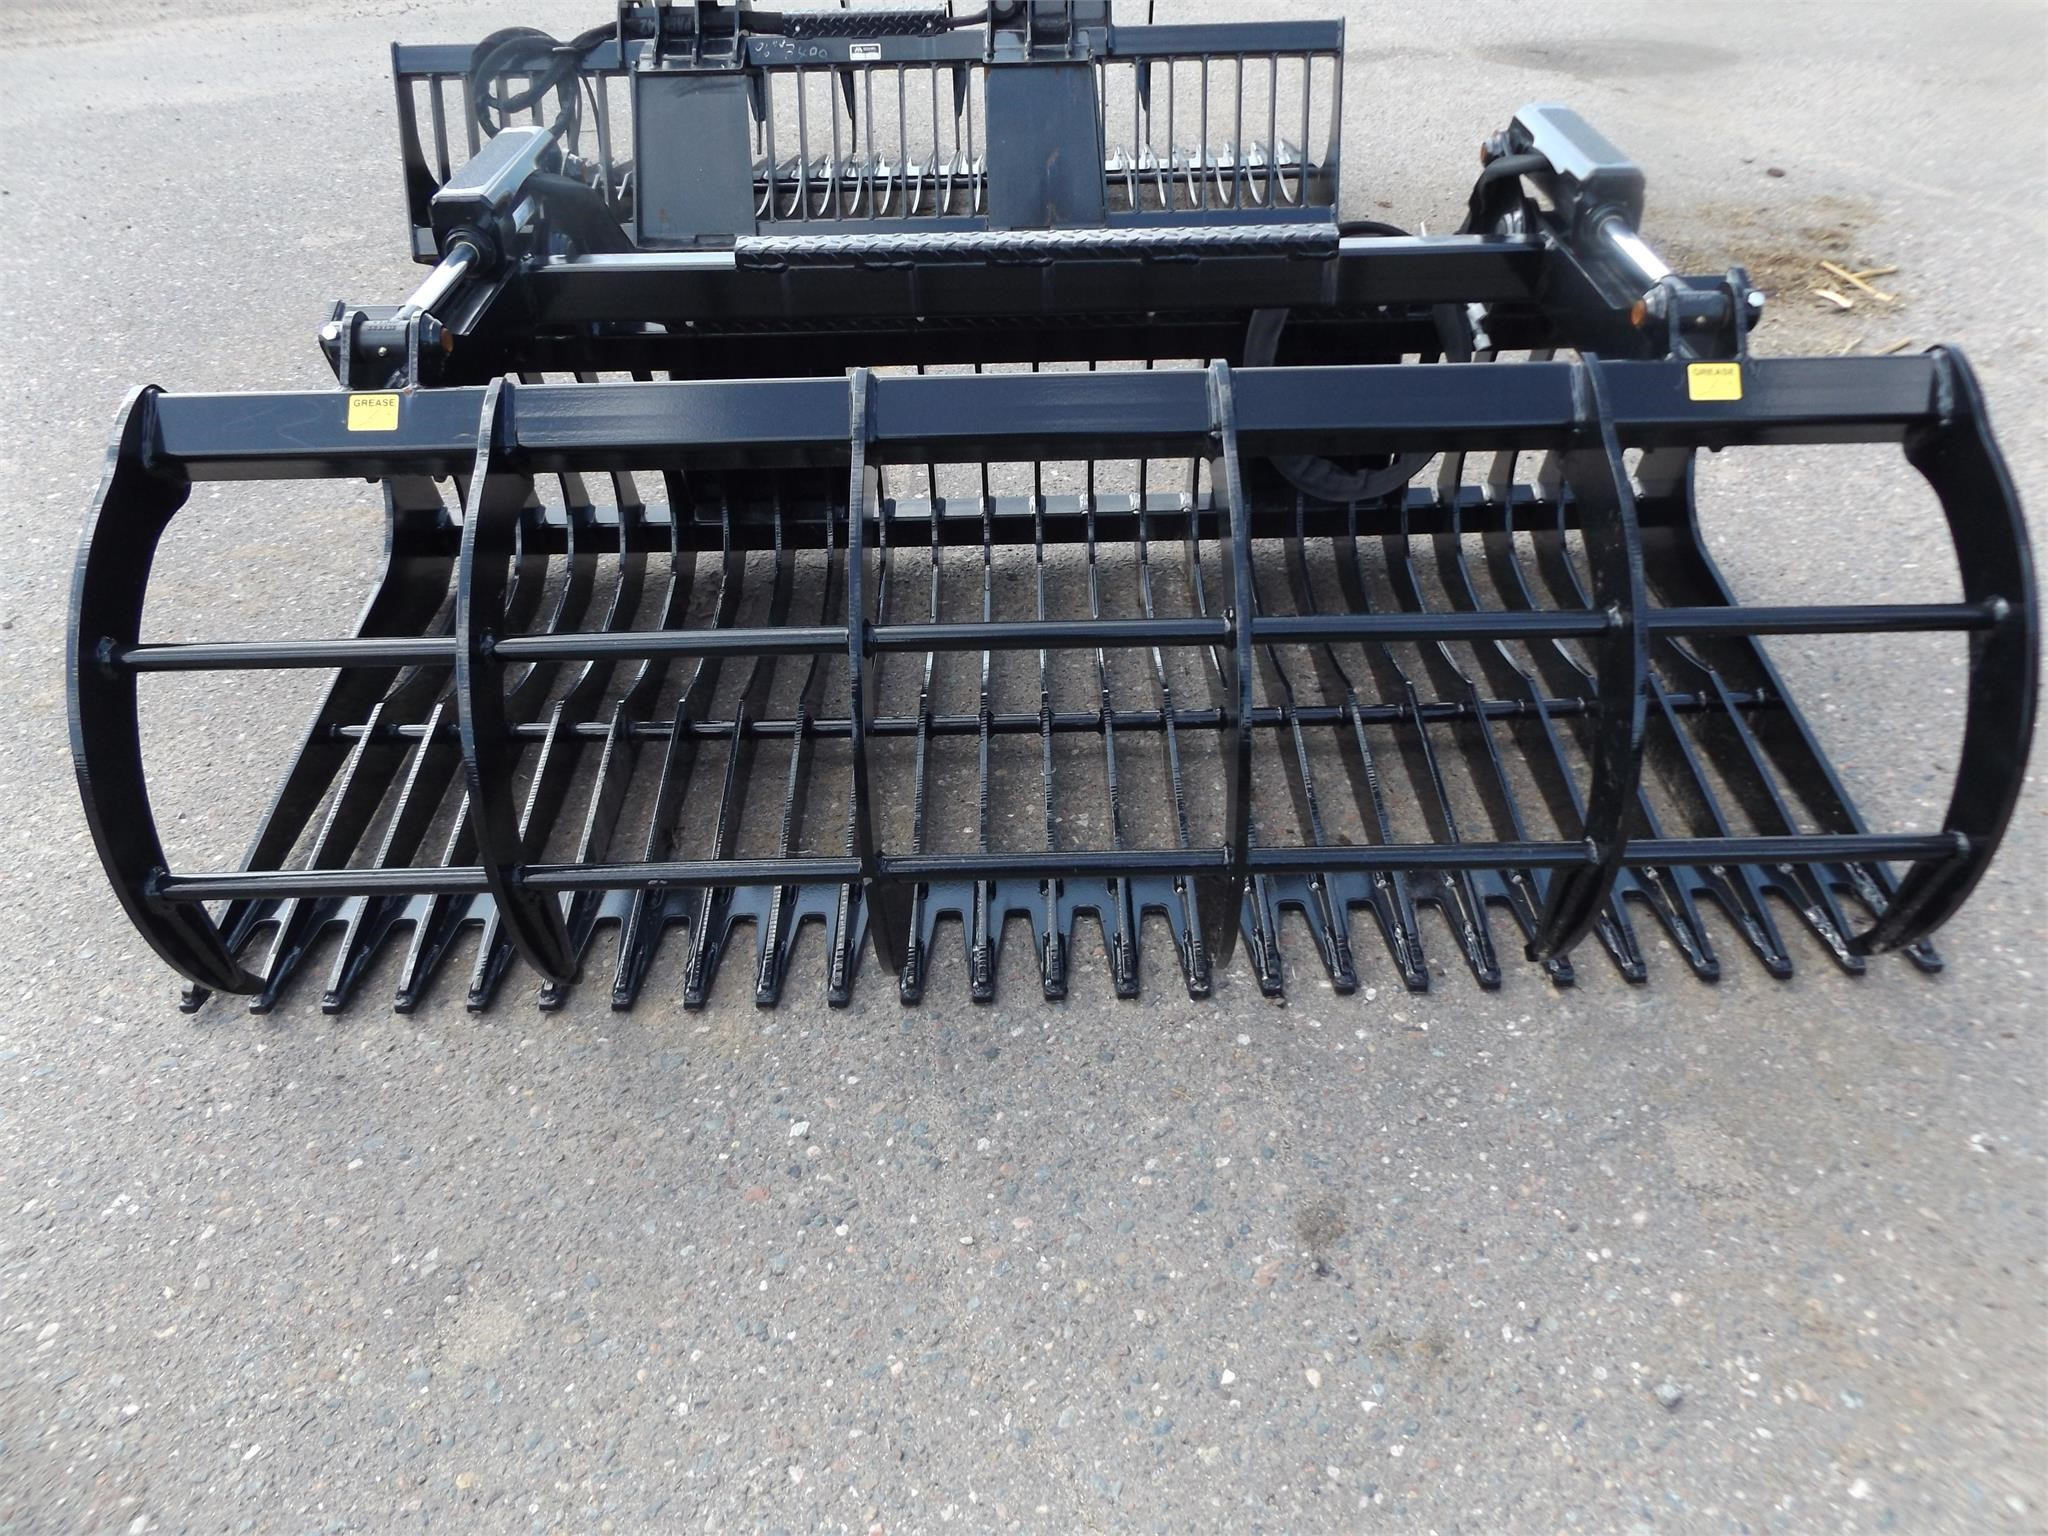 2019 Notch GRB82 Loader and Skid Steer Attachment